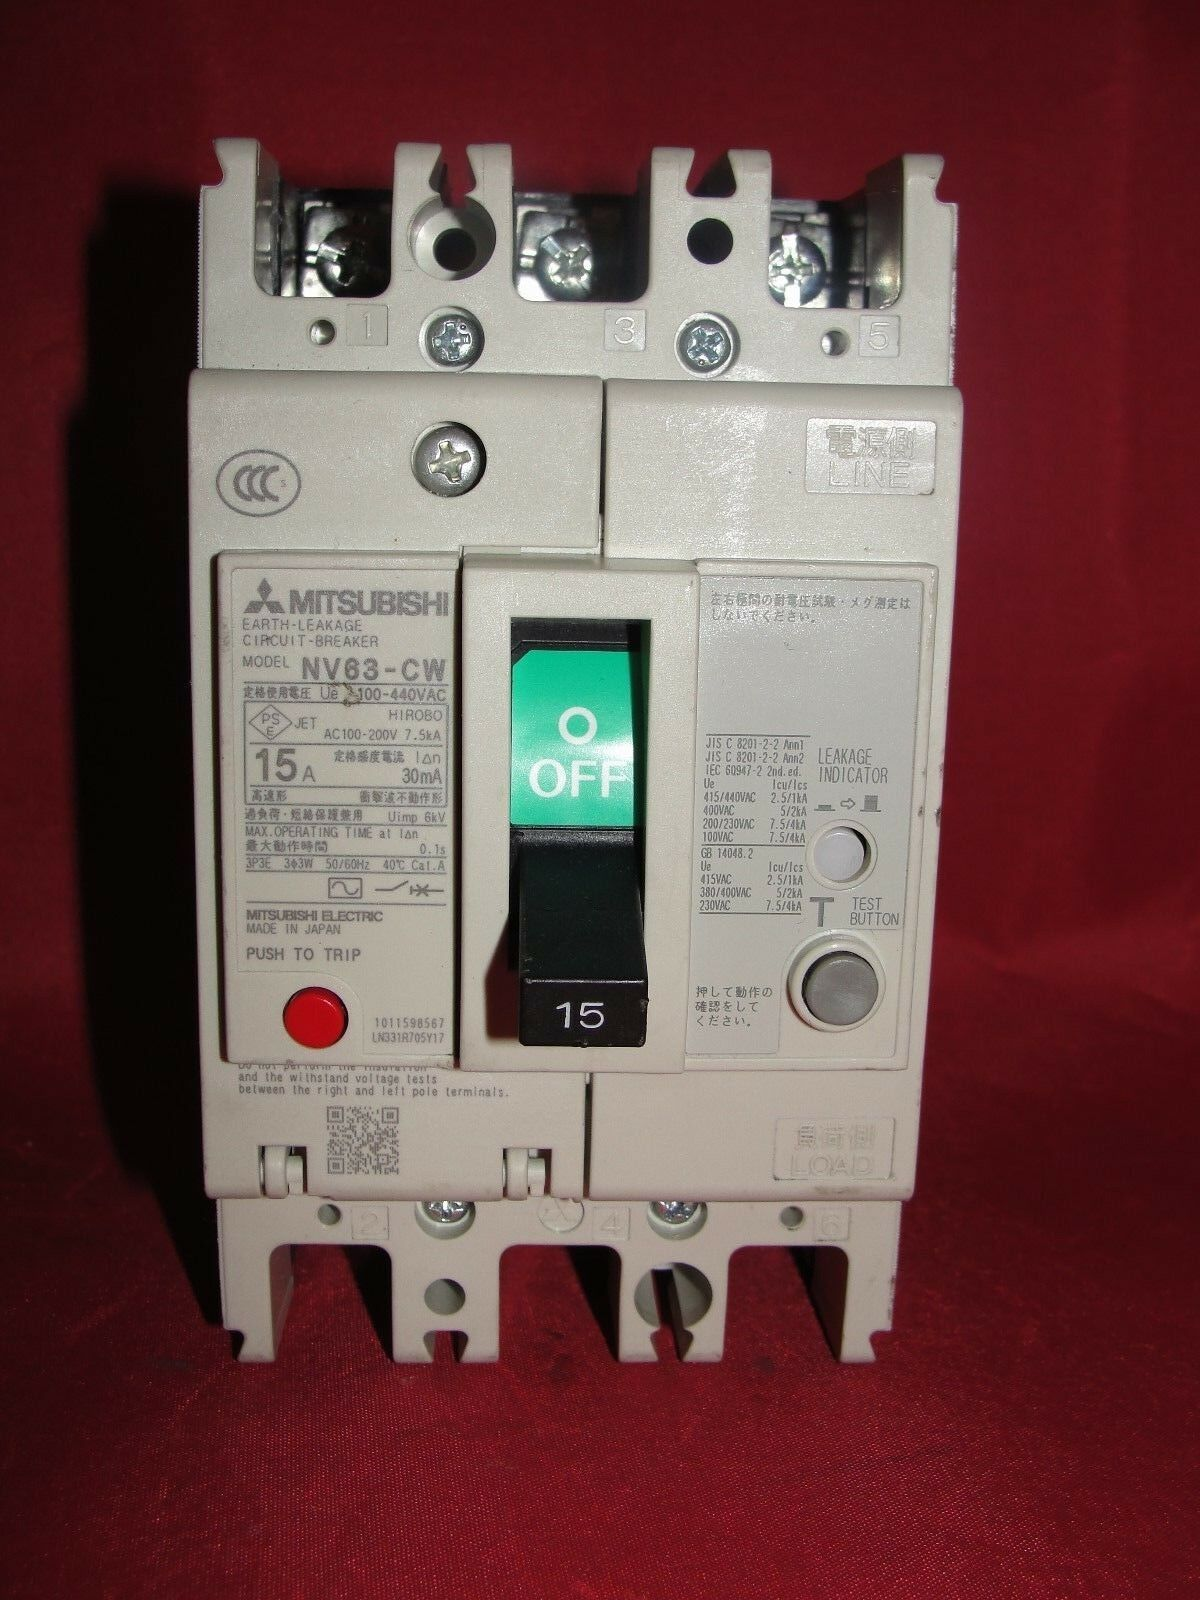 Mitsubishi Electric Nv63 Cw Earth Leakage Circuit Breaker 100 440 Why My Ac Trips The When I Switch It On Sunrise Norton Secured Powered By Verisign